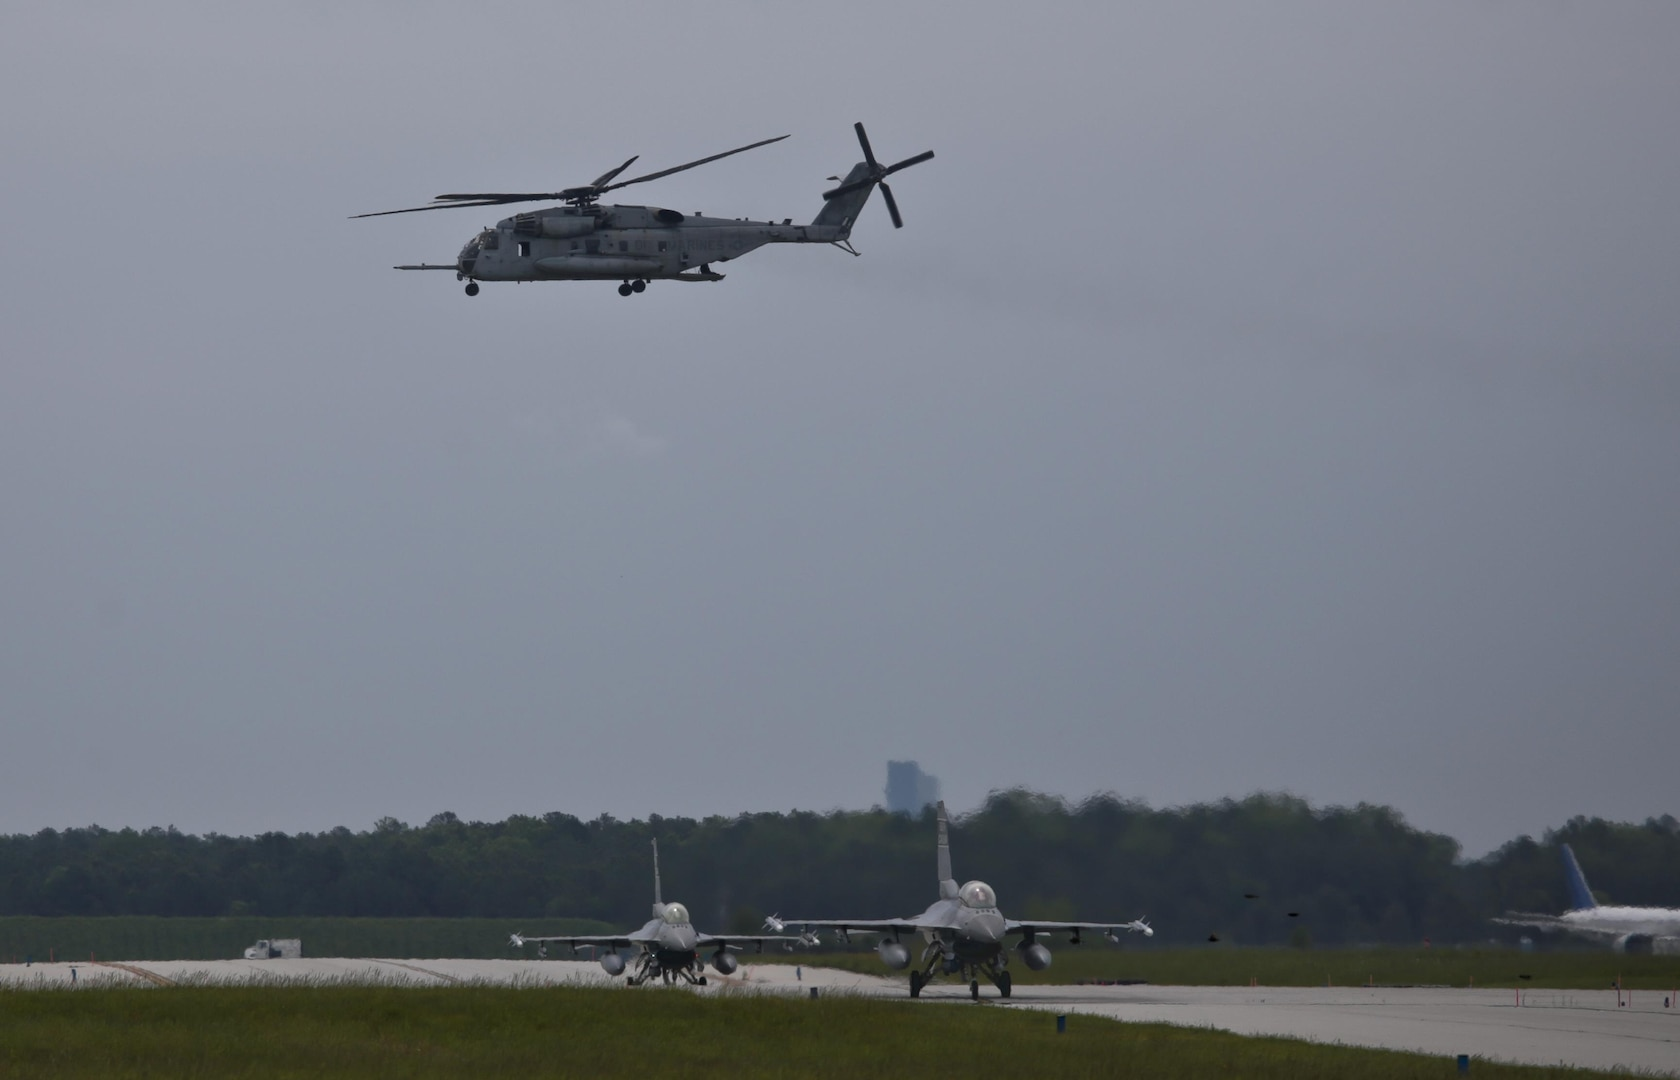 South Carolina Air National Guard F-16D Fighting Falcons from the 169th Fighter Wing taxi for take off during a three-day Aeropsace Control Alert CrossTell live-fly training exercise at Atlantic City Air National Guard Base, N.J., May 23, 2017. Representatives from the Air National Guard fighter wings, Civil Air Patrol, and U.S. Coast Guard rotary-wing air intercept units will conduct daily sorties from May 23-25 to hone their skills with tactical-level air-intercept procedures. (U.S. Air National Guard photo by Master Sgt. Matt Hecht/Released)